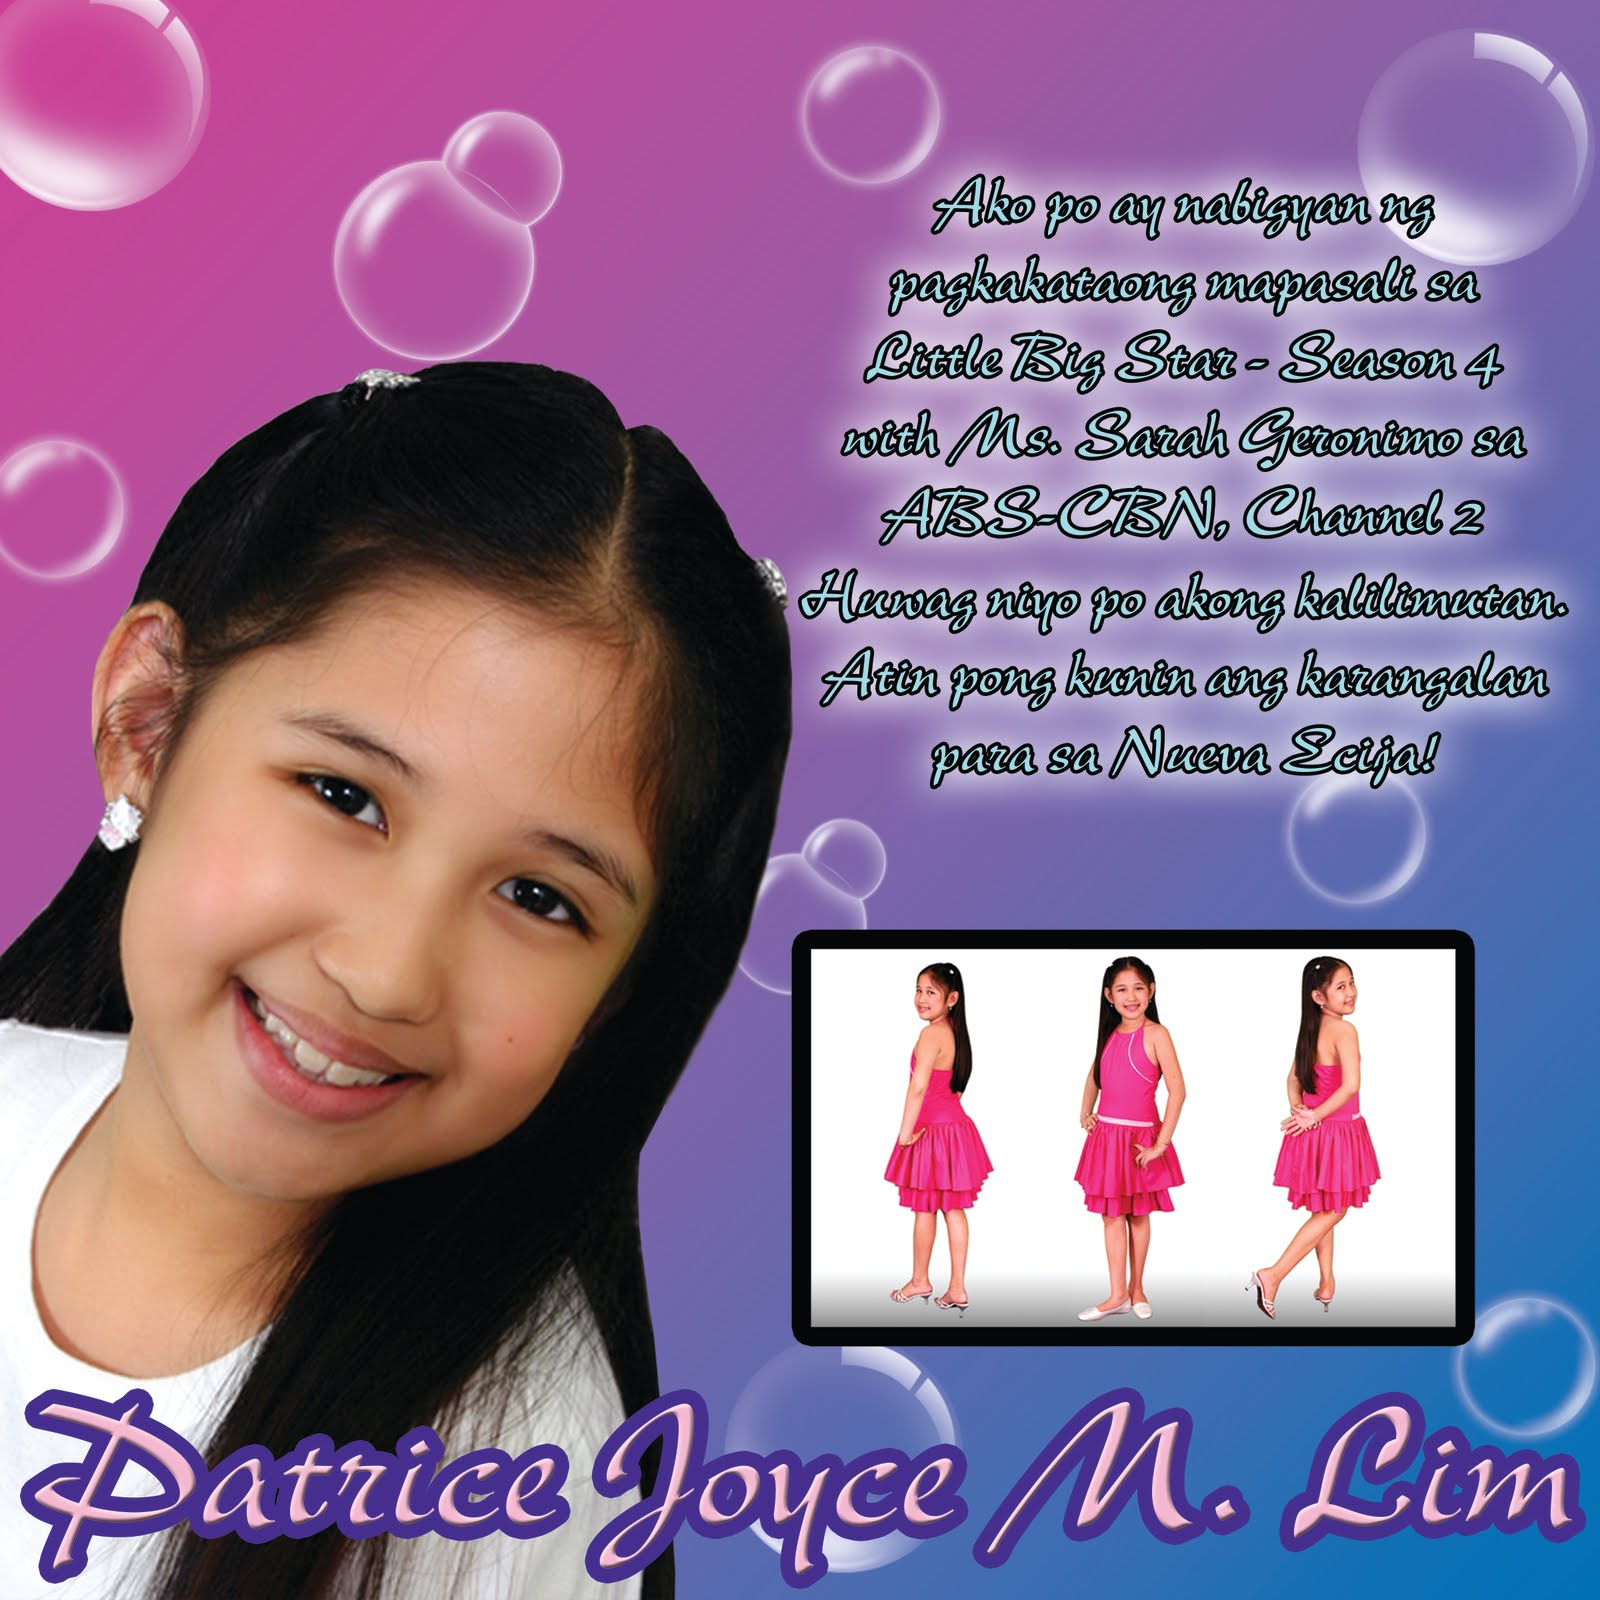 Little Big Star Poster – Patrice Joyce M. Lim